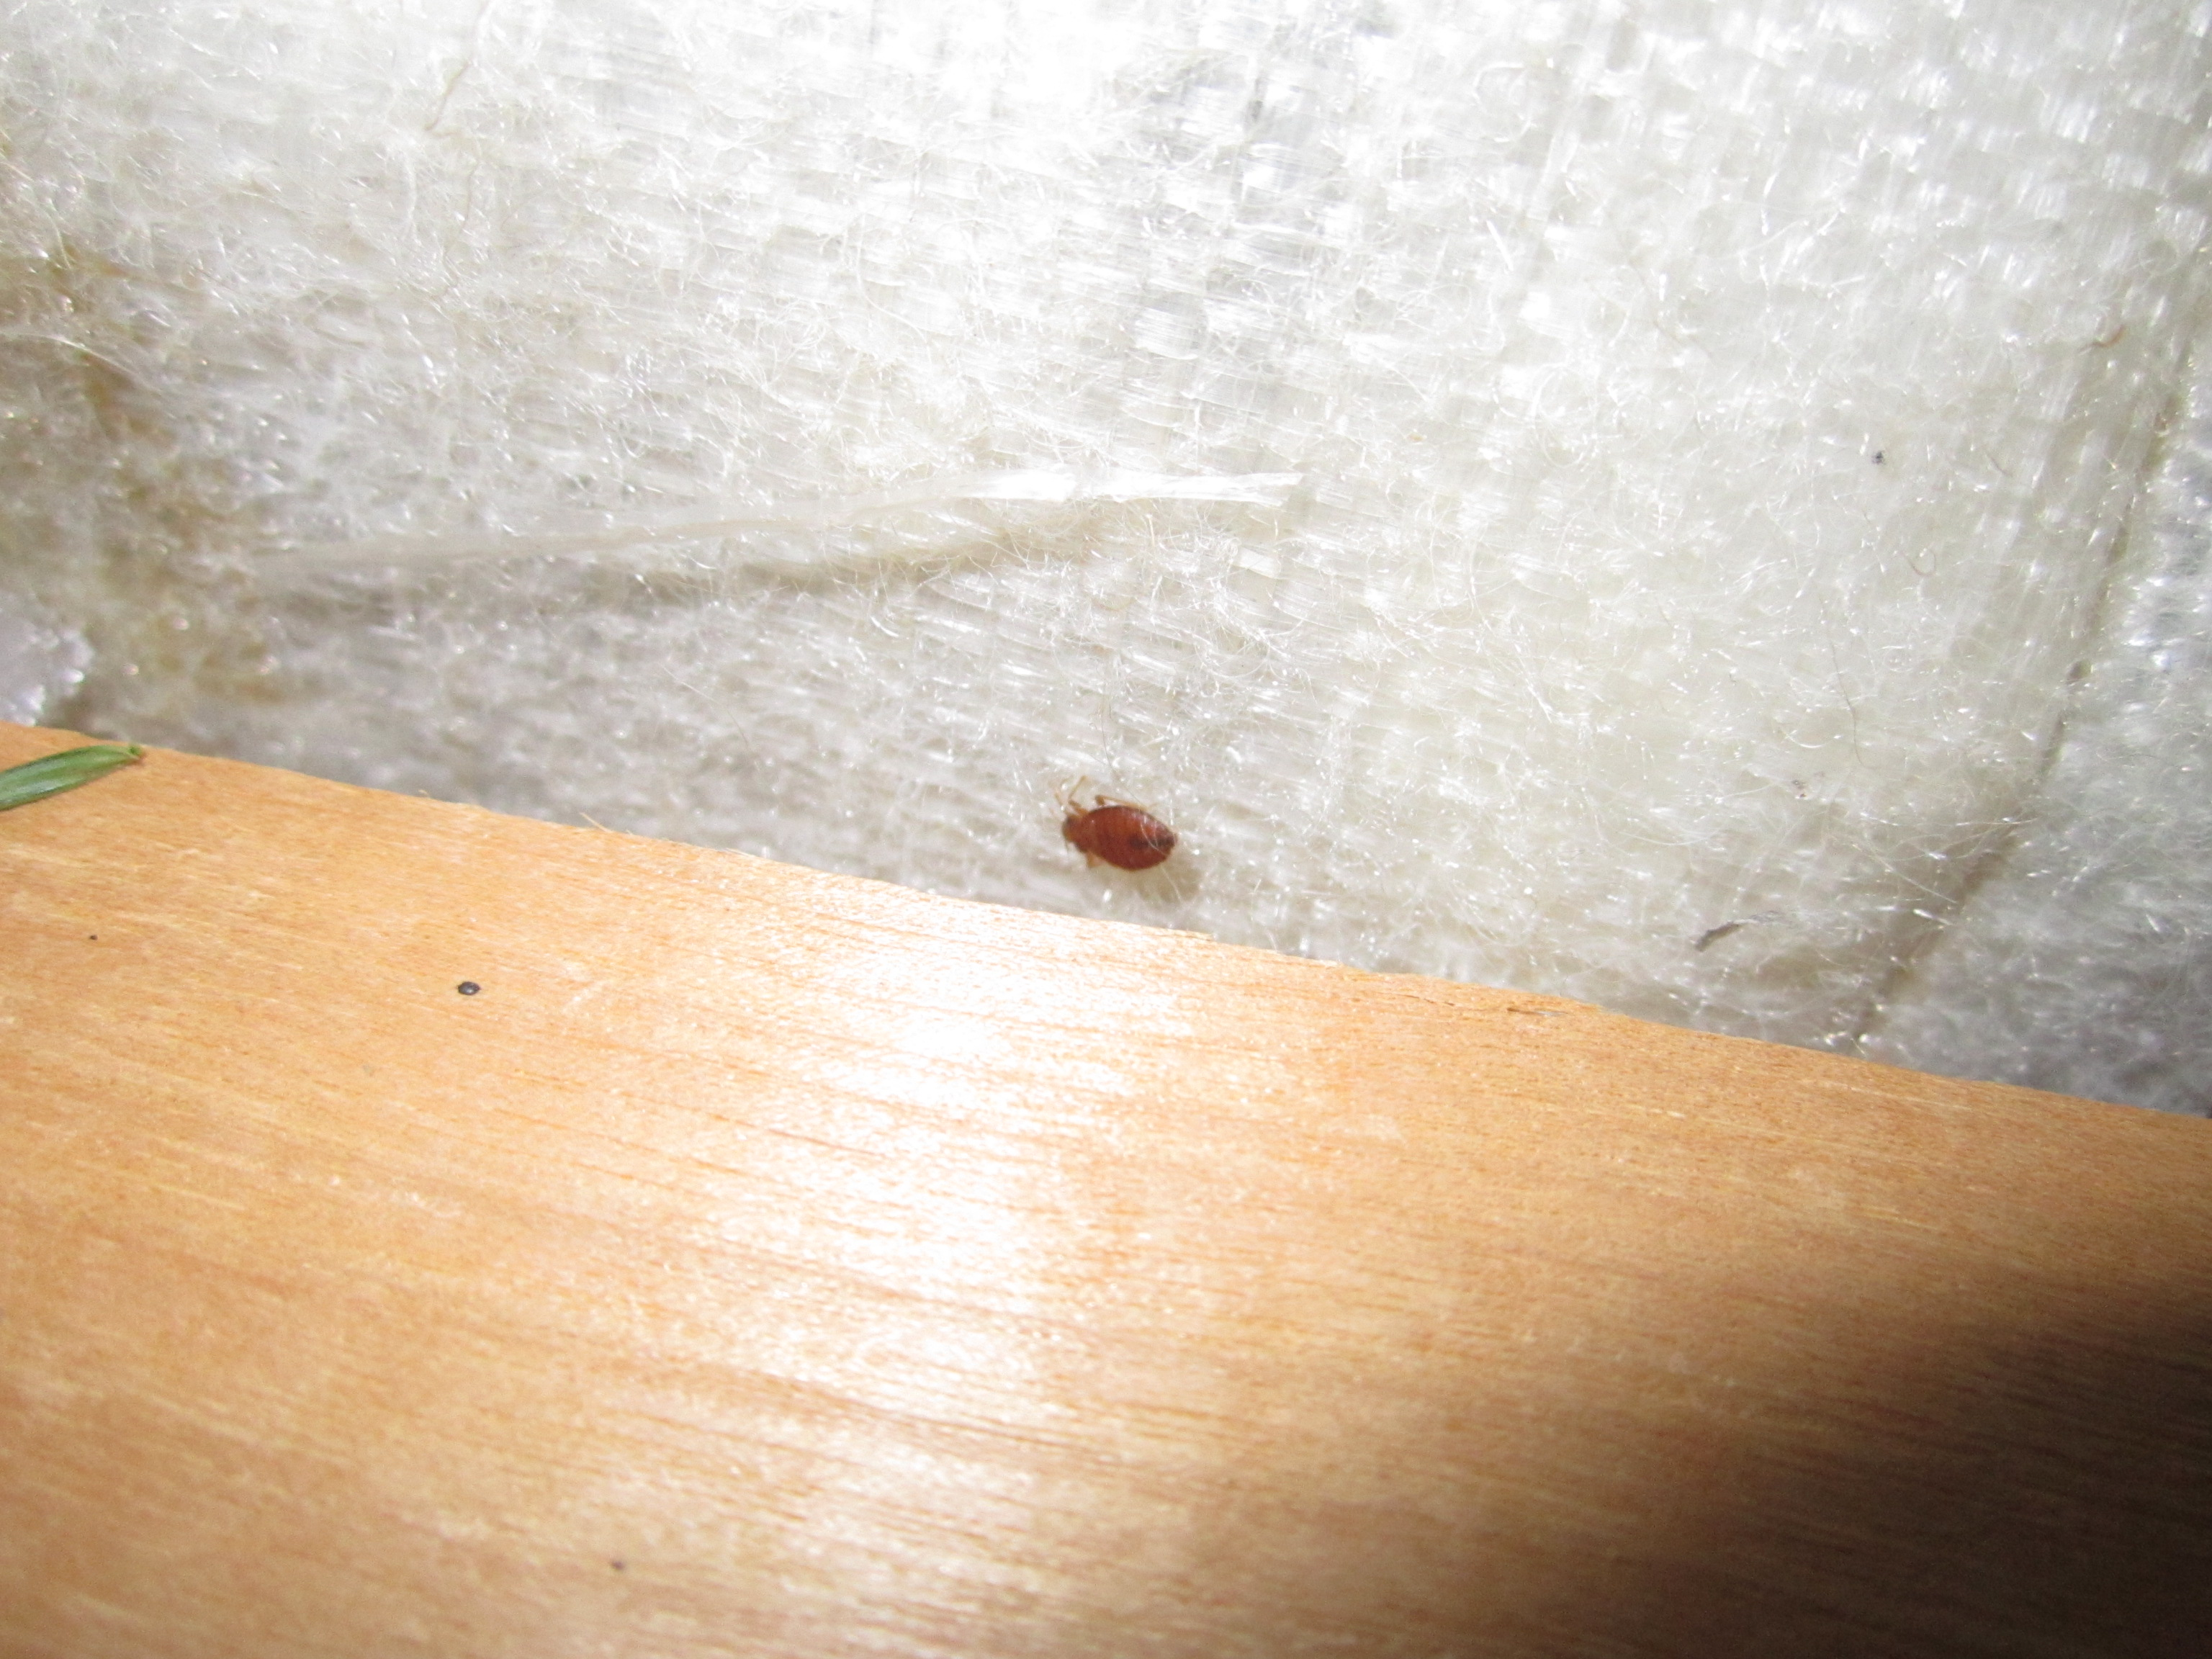 How to spot bedbug infested garbage – Things I find in the